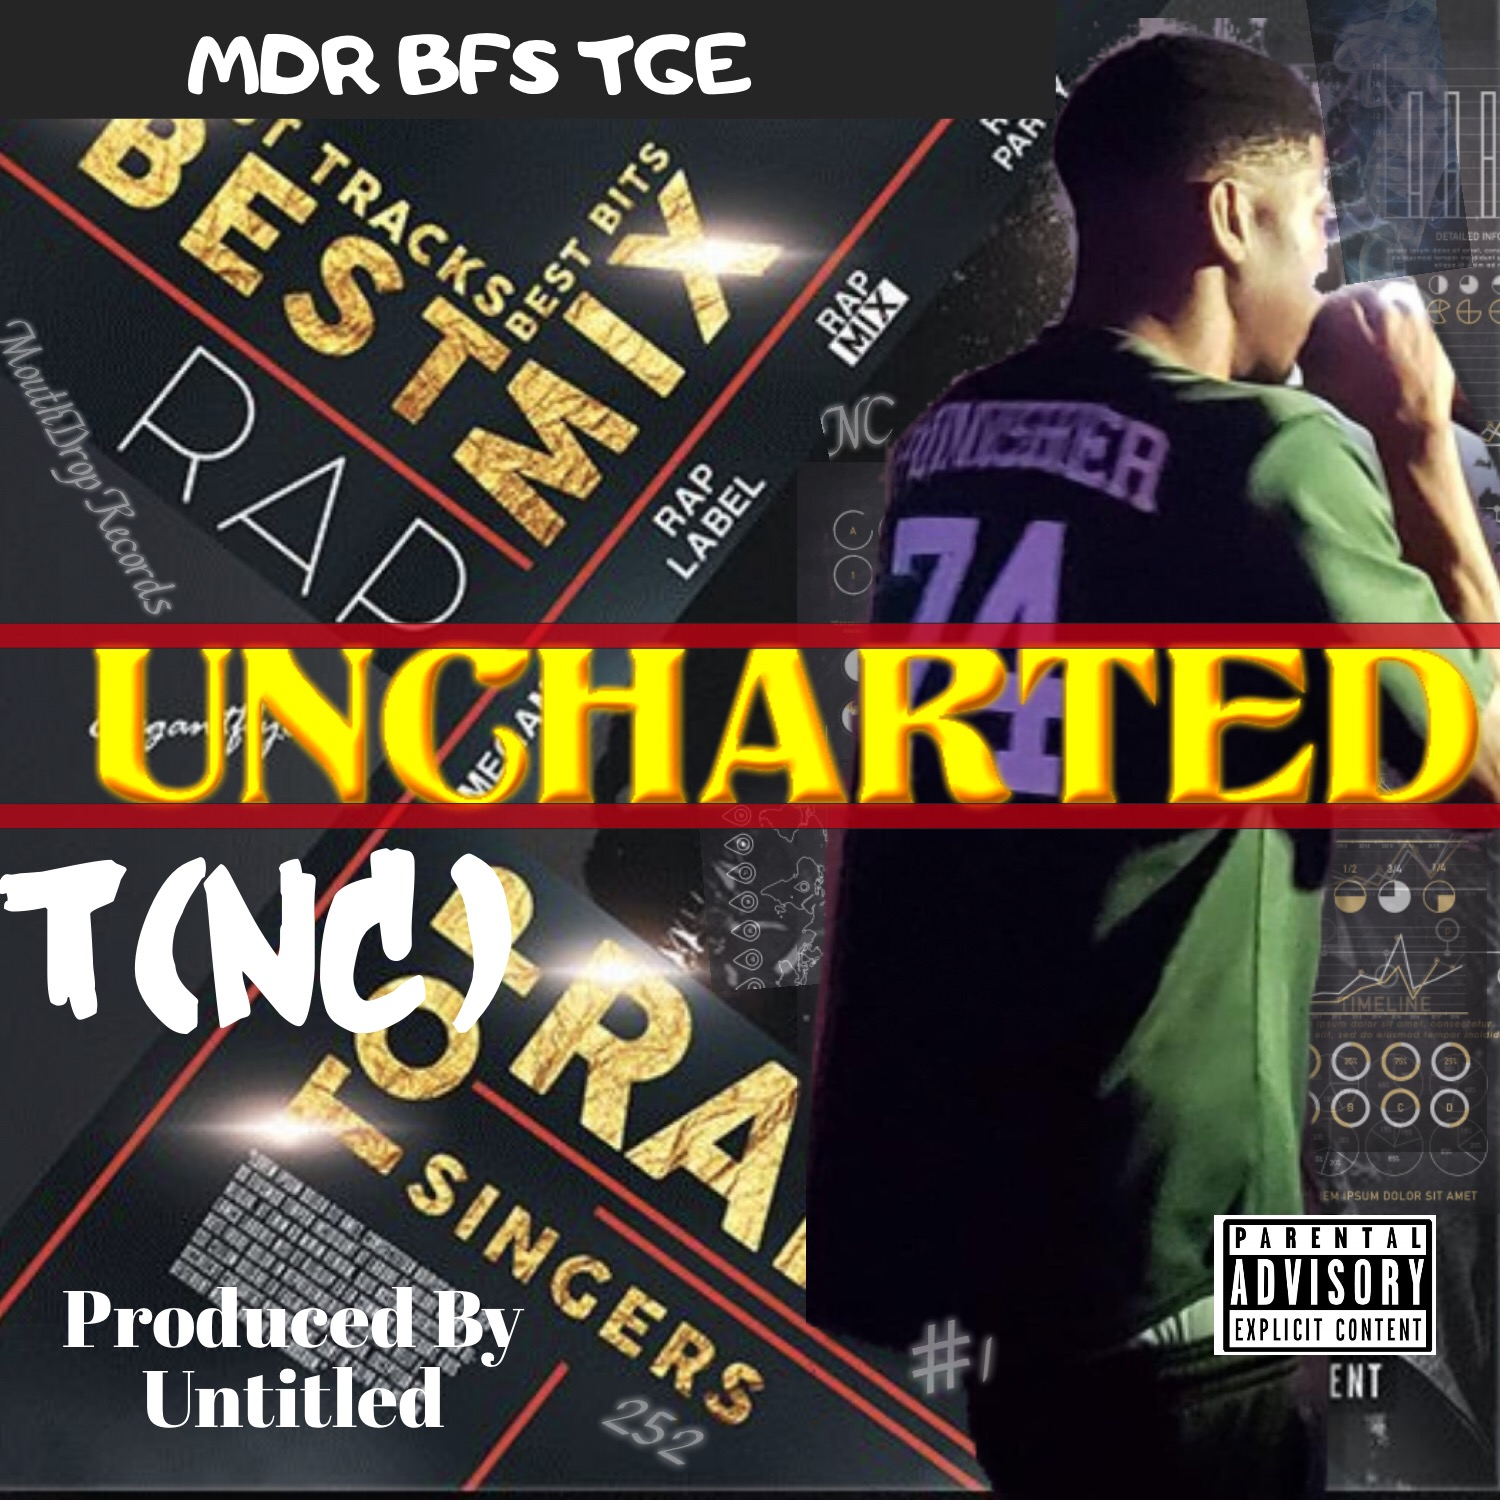 T(NC) UnCharted